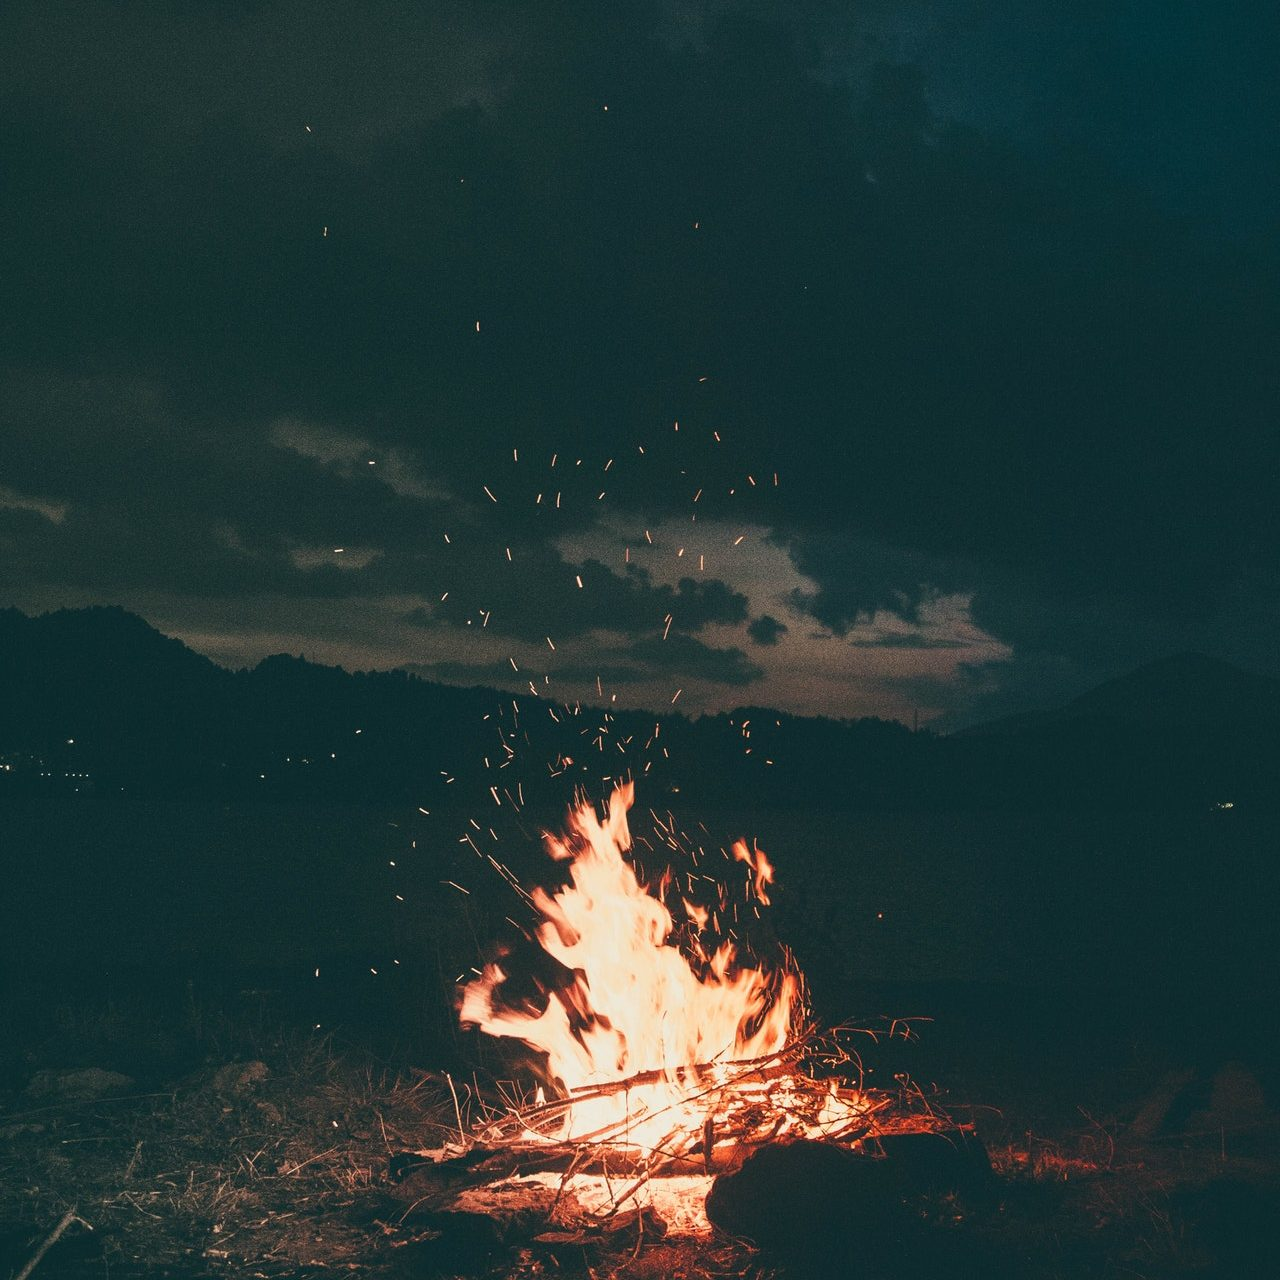 bonfire-burning-camp-campfire-1368382